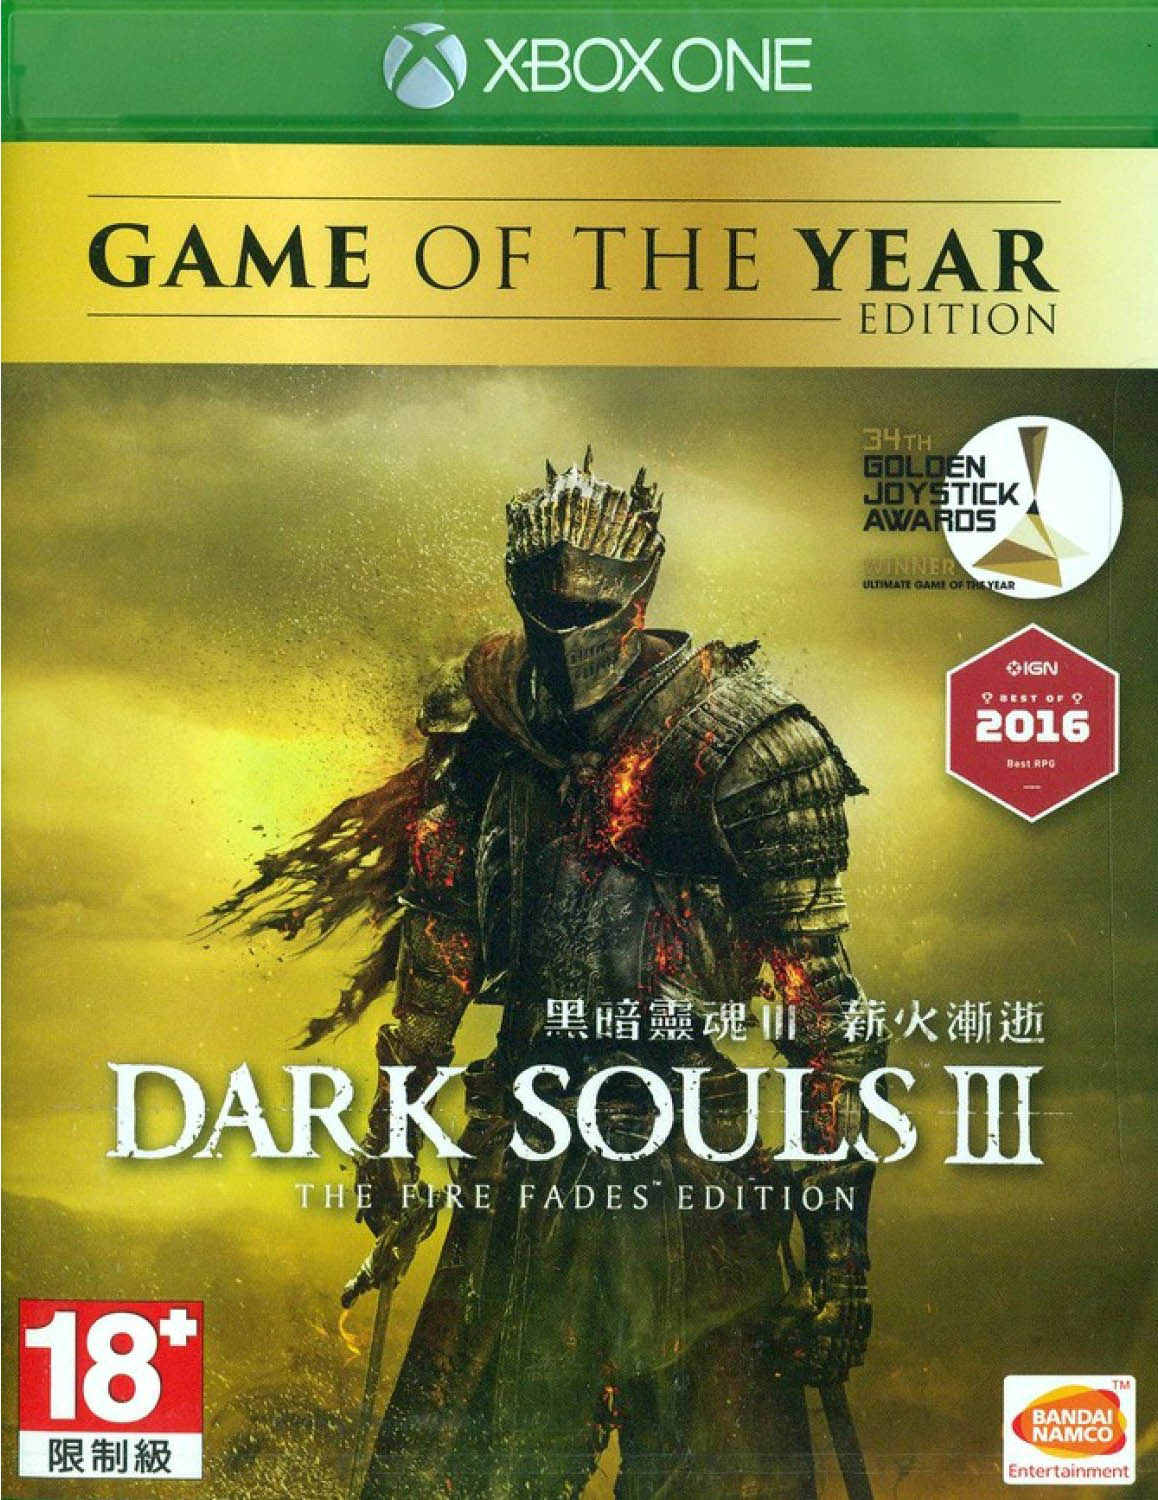 Dark Souls III: The Fire Fades Edition (Game of the Year Edition) Xbox One Издание в Азии